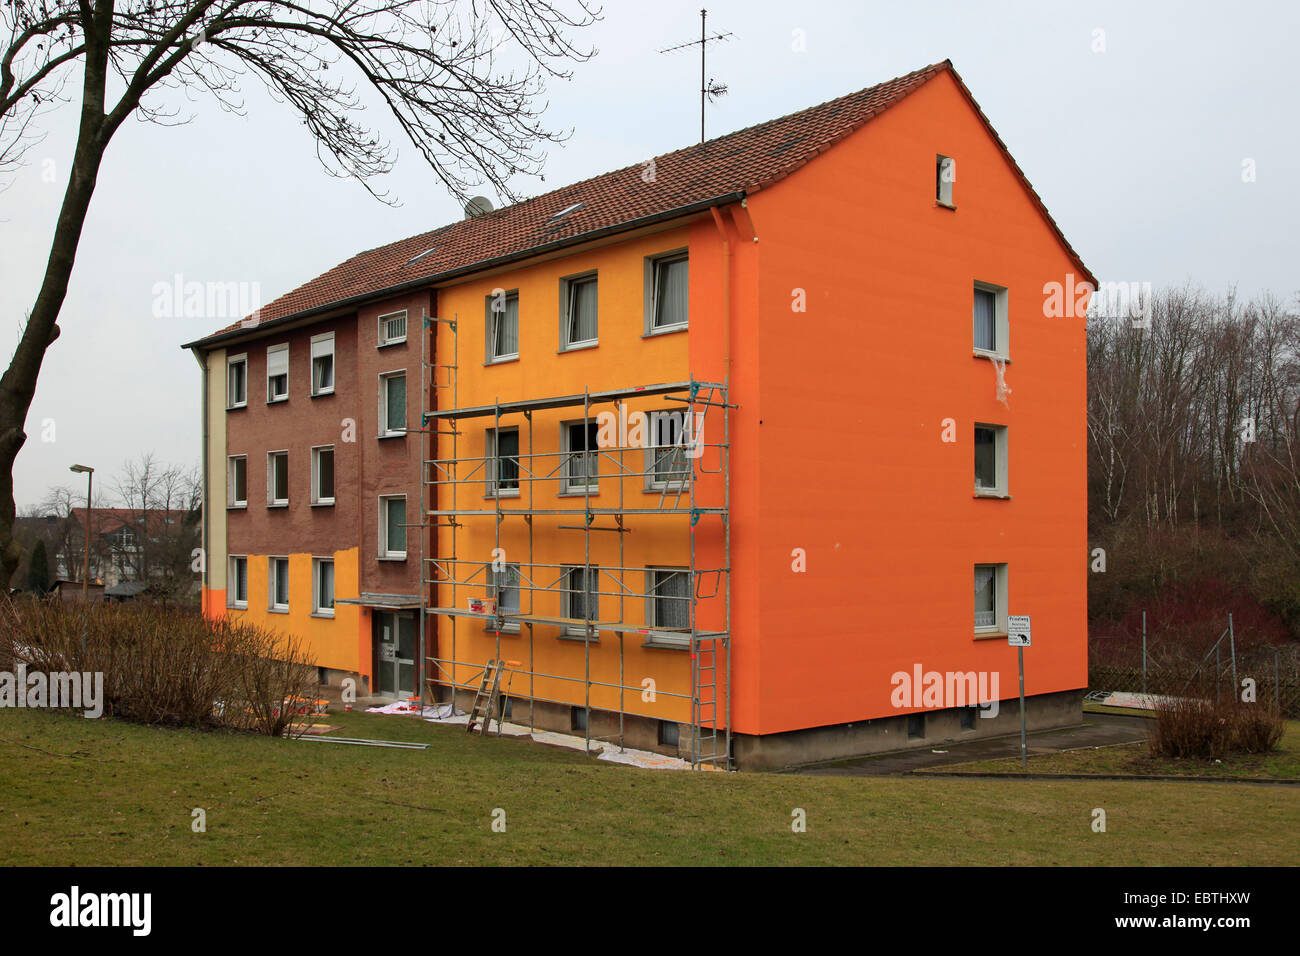 scaffold at a multi-storey residential building that is painted, Germany - Stock Image